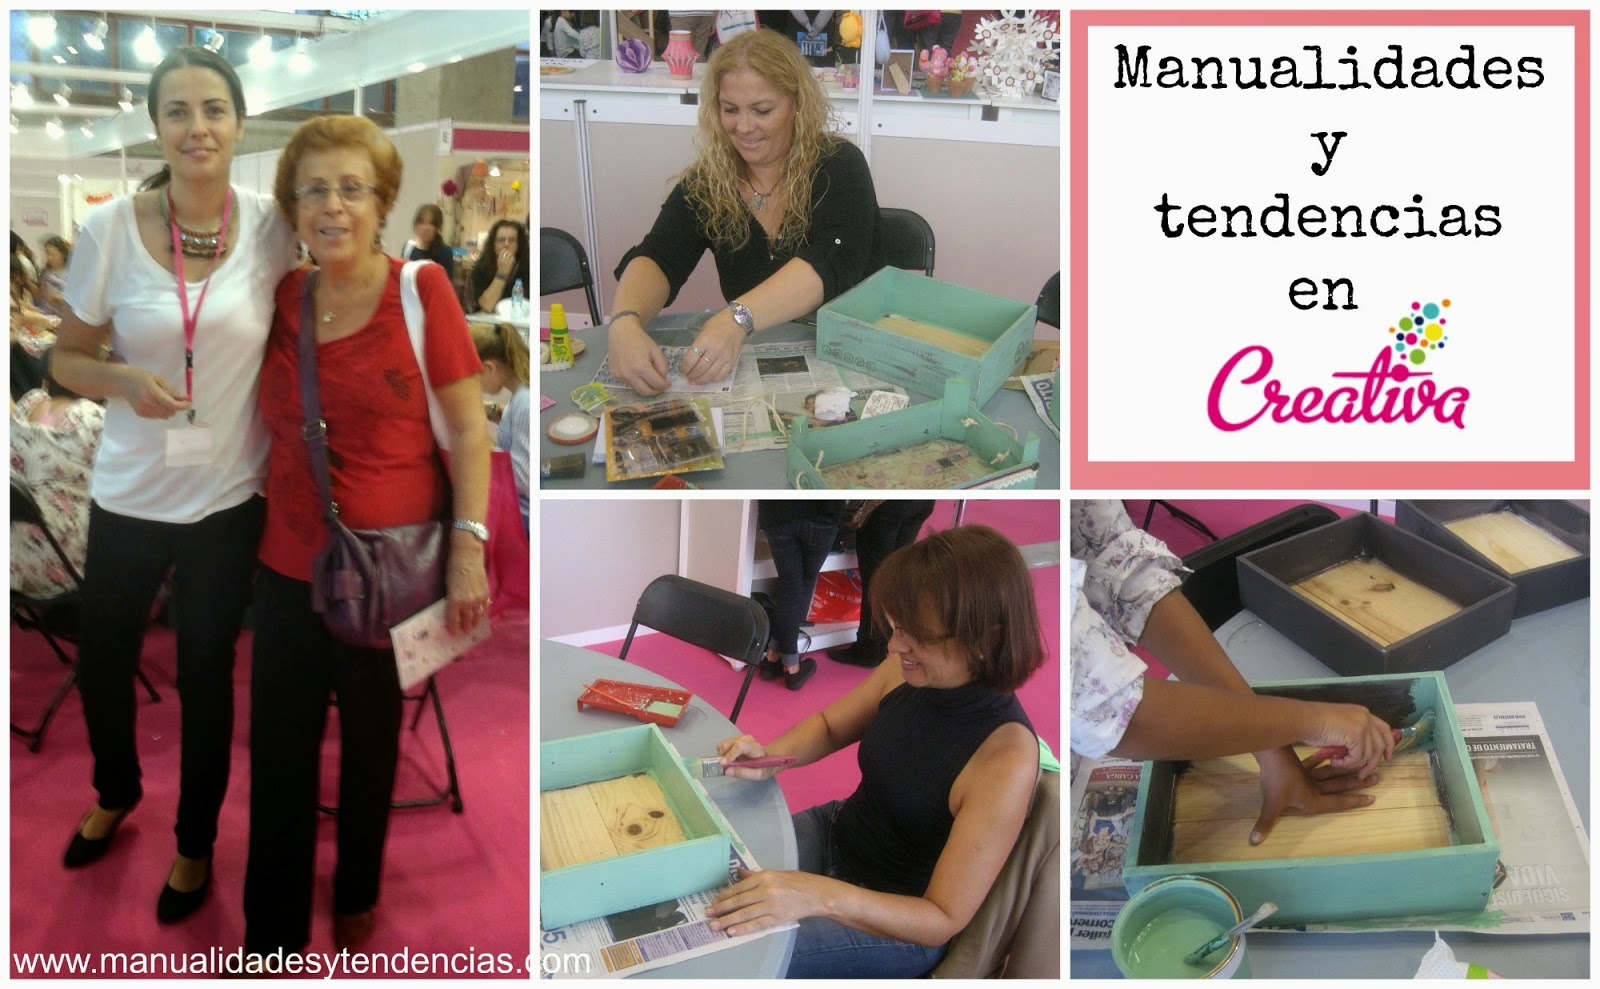 Talleres creativa Madrid Manualidades y tendencias